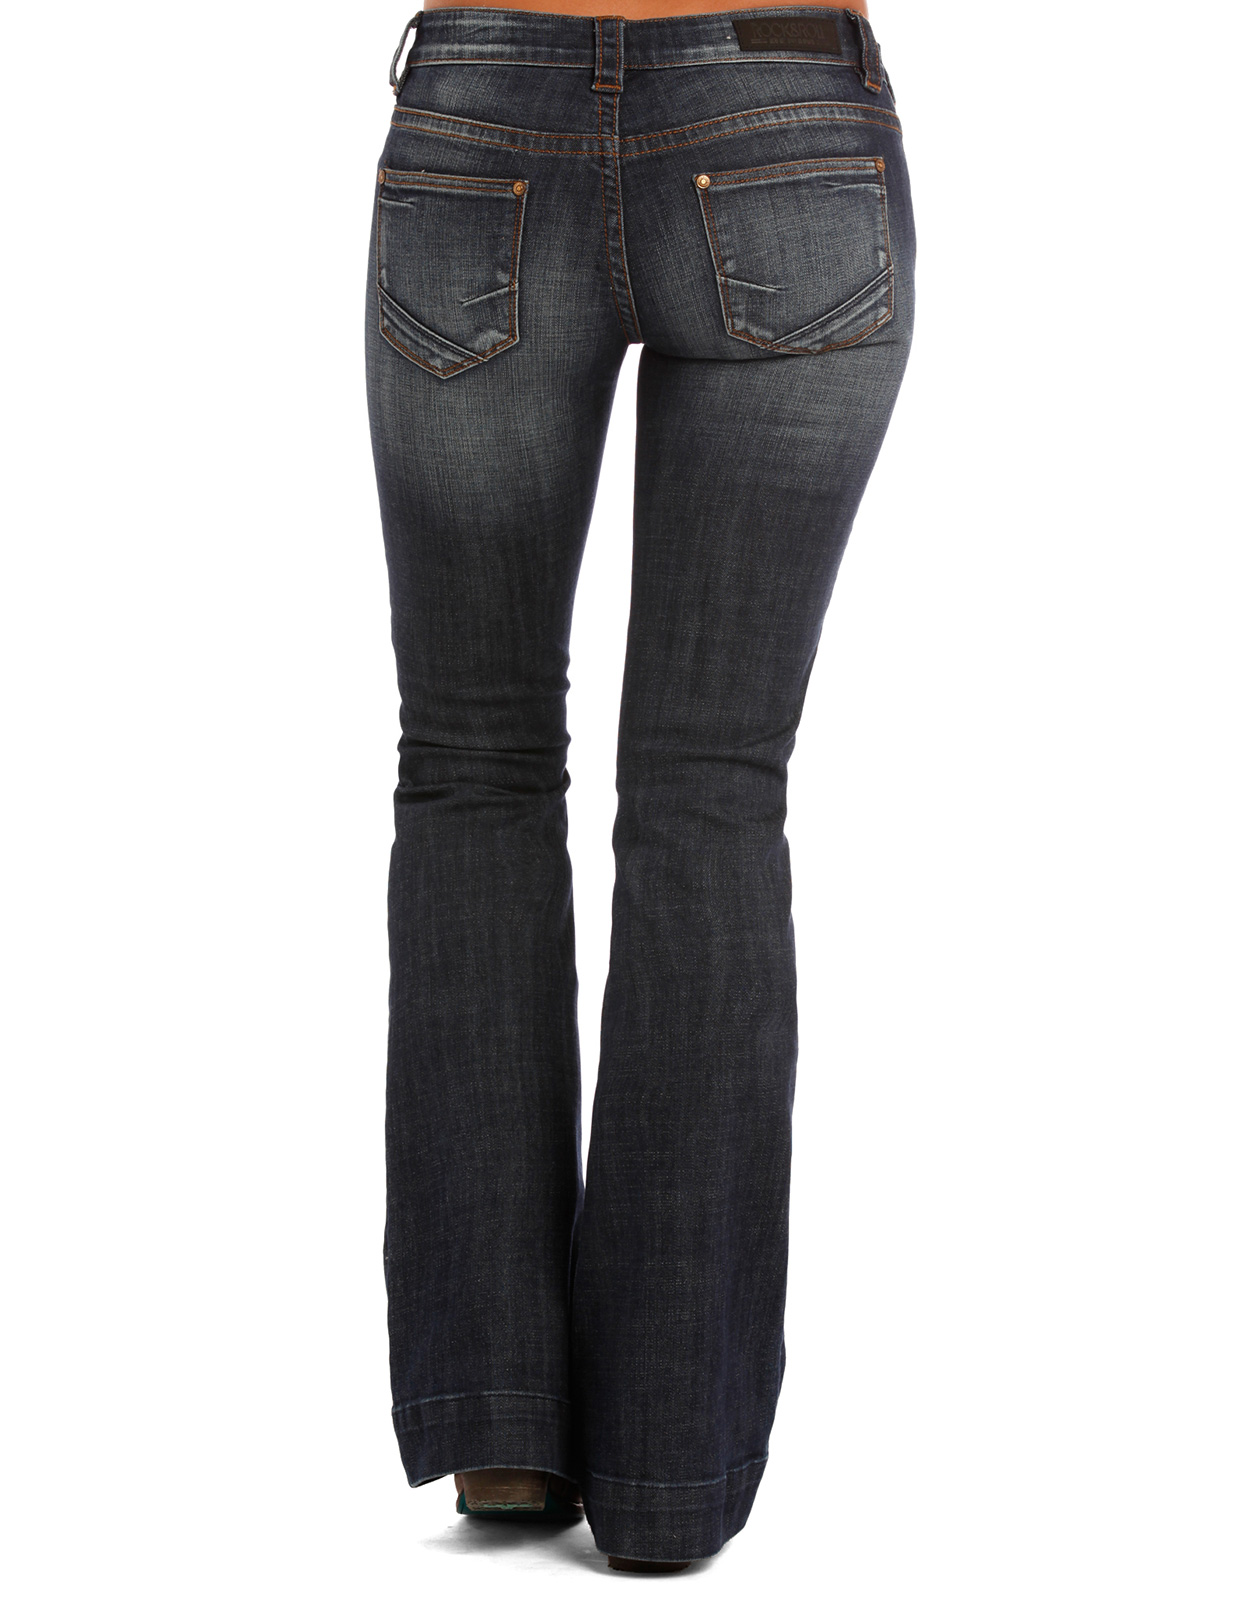 Product Description Indigo waist smoother boot cut jean is a pull on jean with an elastic.